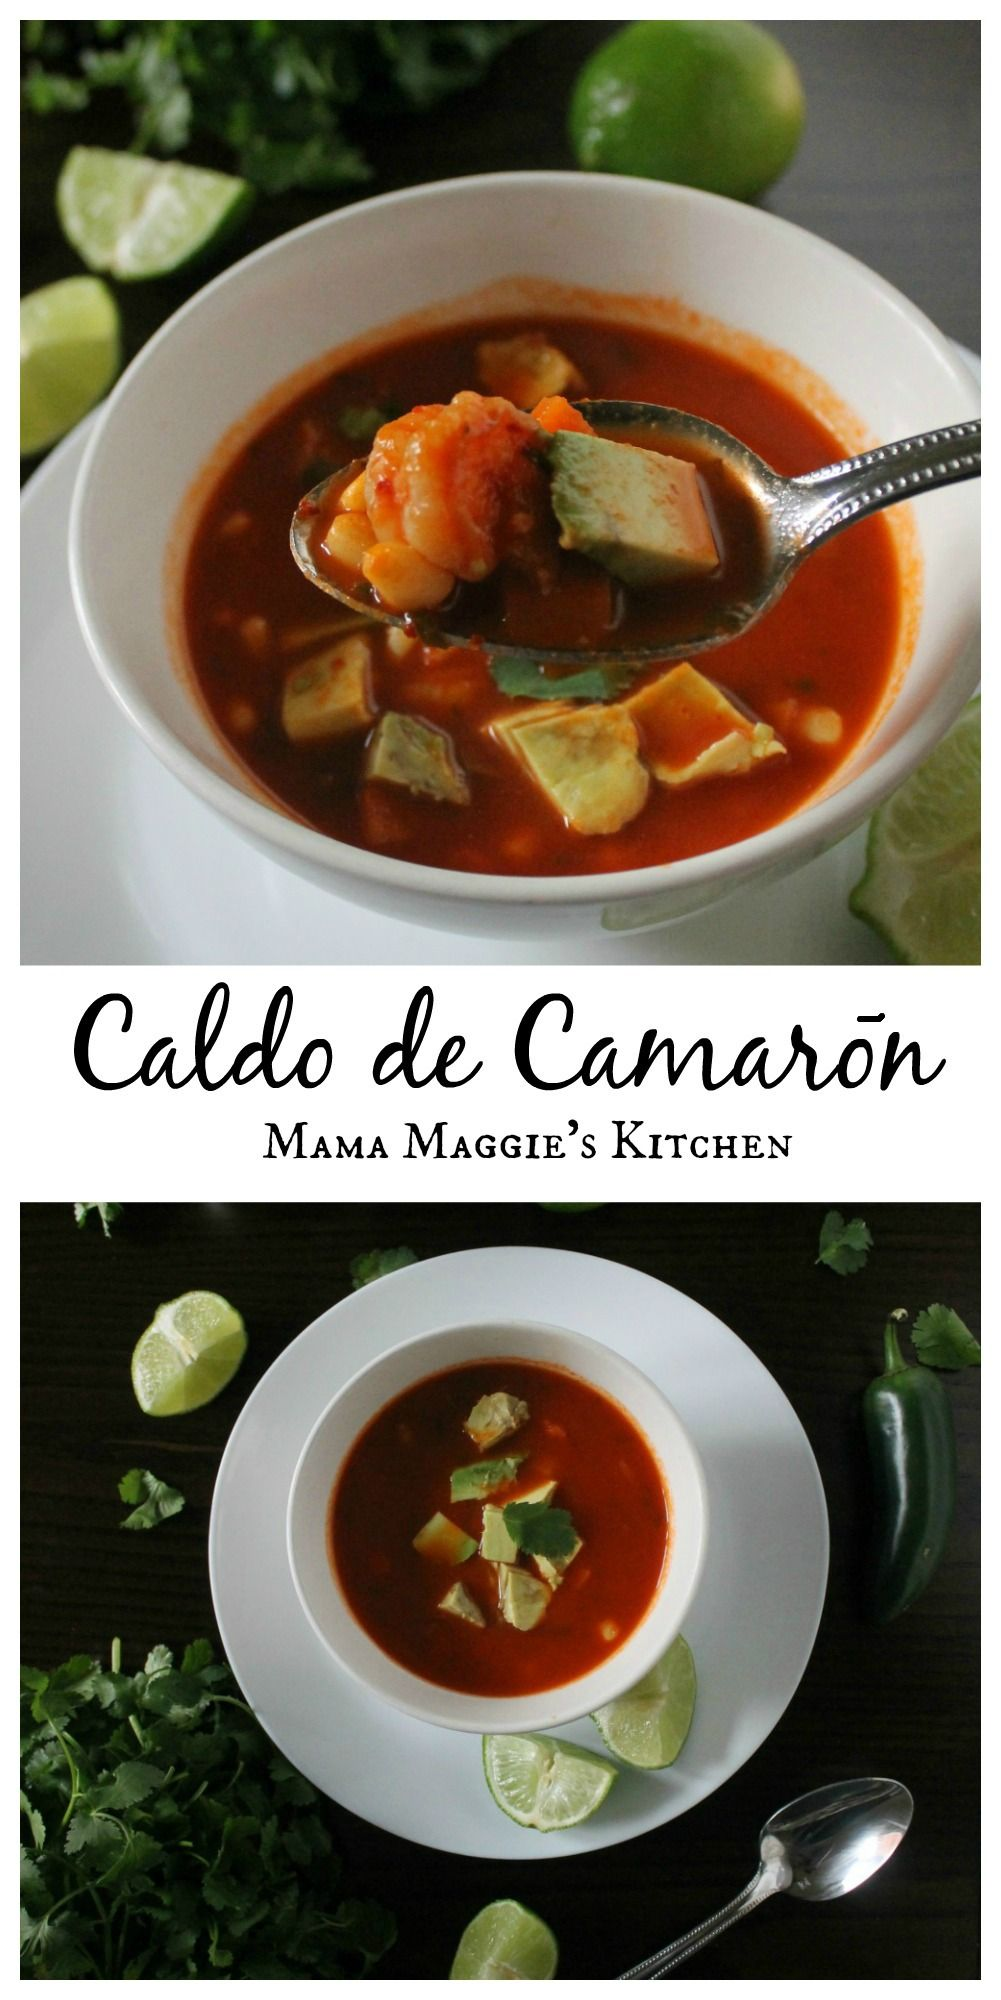 Caldo de Camarón, or Mexican Shrimp Soup - is a hearty soup full of shrimp and veggies. Usually made with yummy, comforting goodness and lots of love. Mama Maggie's Kitchen #caldodecamaron #shrimpsoup #mexicanshrimpsoup #soup #shrimp #seafood #mexicanfood #mexicanshrimp #recipe #caldo #mexicanshrimprecipes